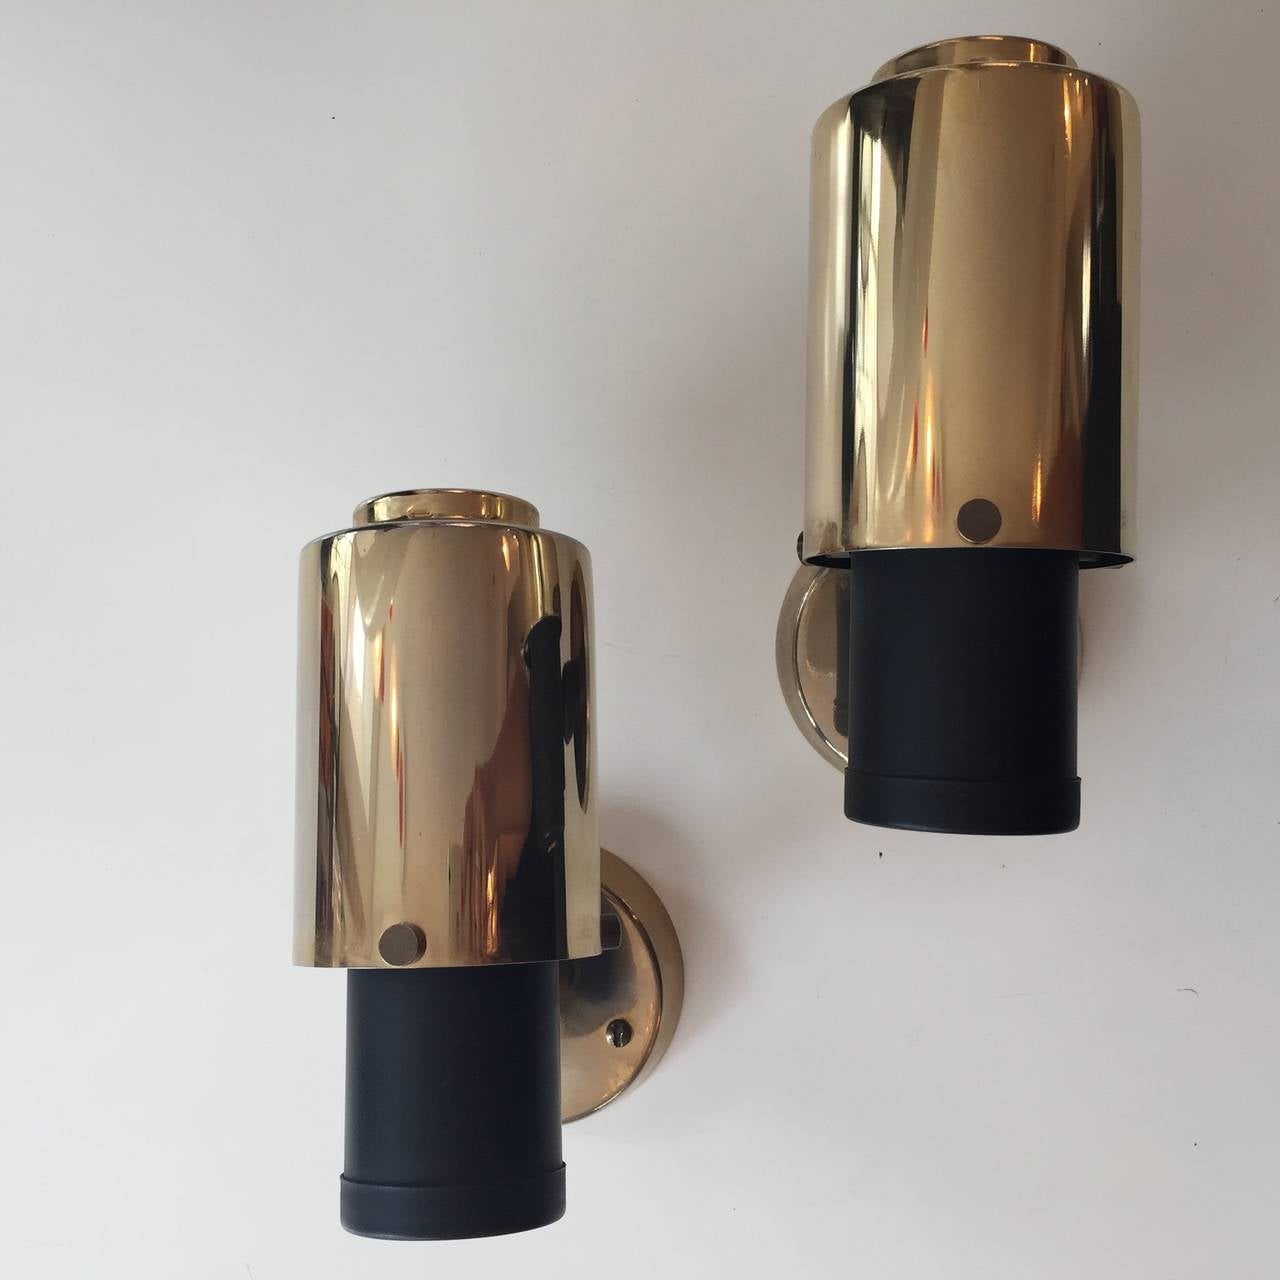 Pair of Jacques Biny Wall Lights for Lita from the 1950s In Good Condition For Sale In Paris, FR